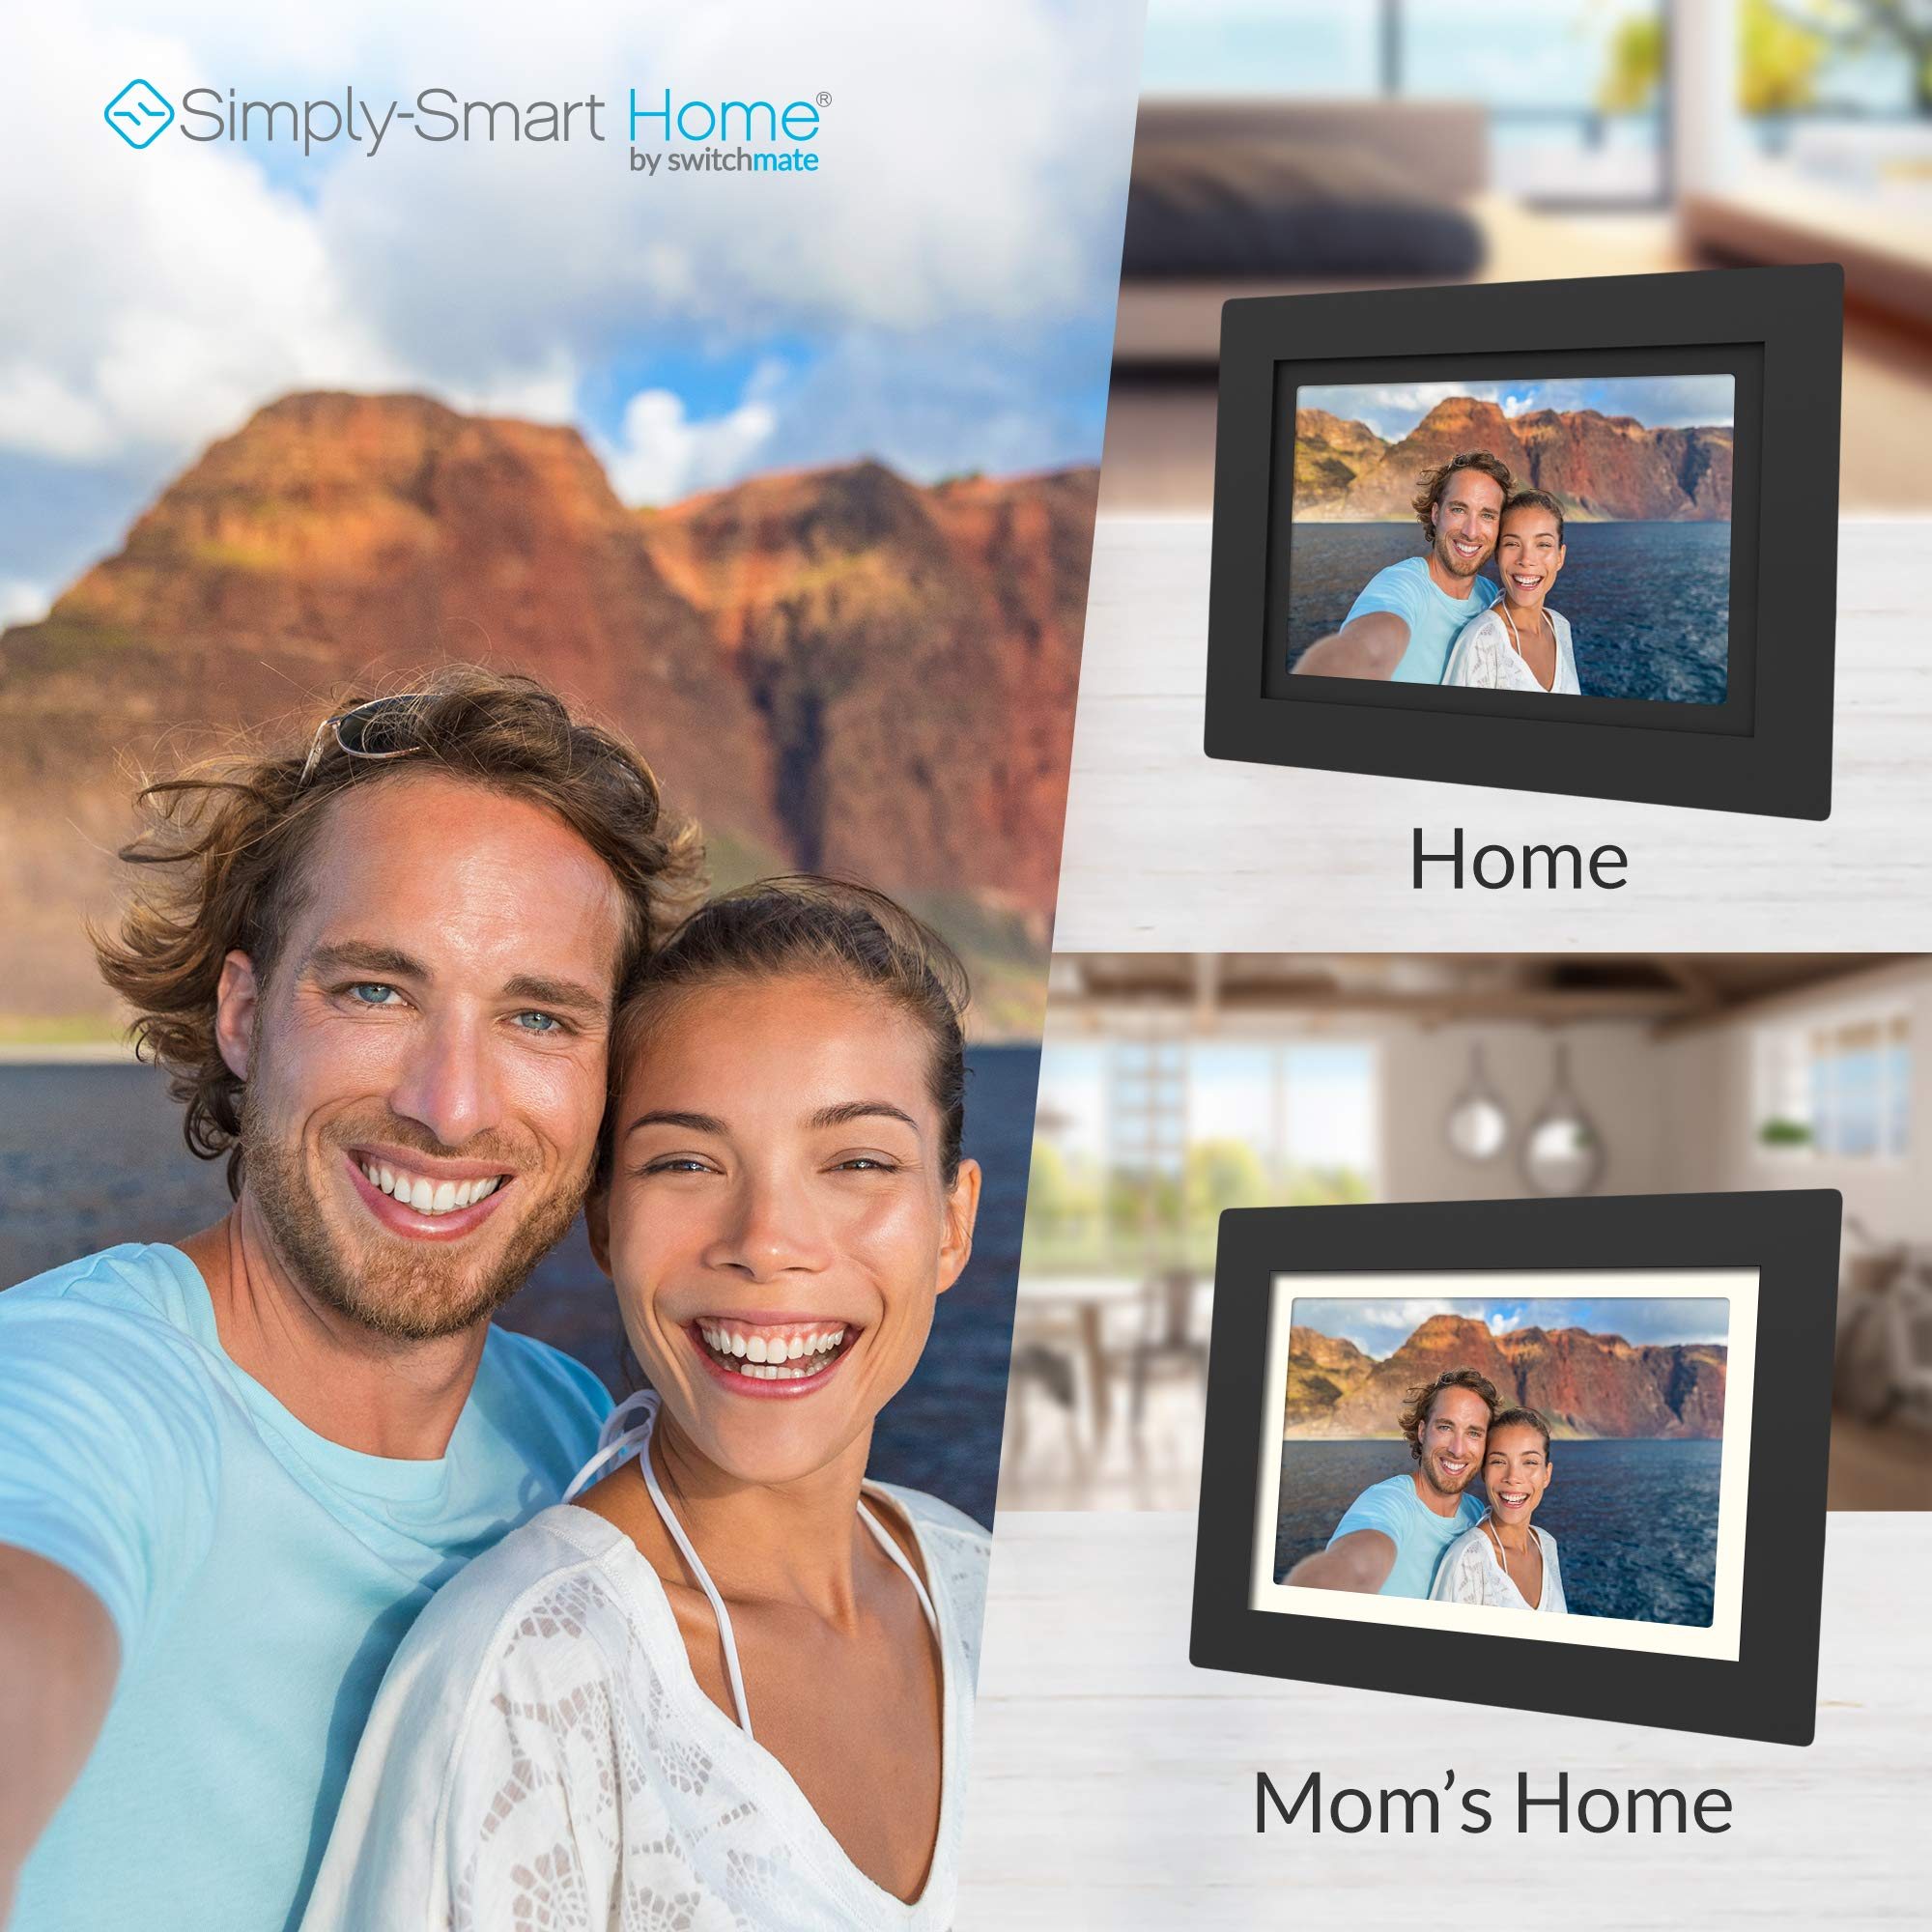 SimplySmart Home PhotoShare Social Network Frame 8'', Send Pics from Phone to Frame, Wi-Fi, Cloud, Digital Picture Frame, Holds Over 1,000 Photos, HD, 1080P, Black/White Mats by Switchmate (Image #3)